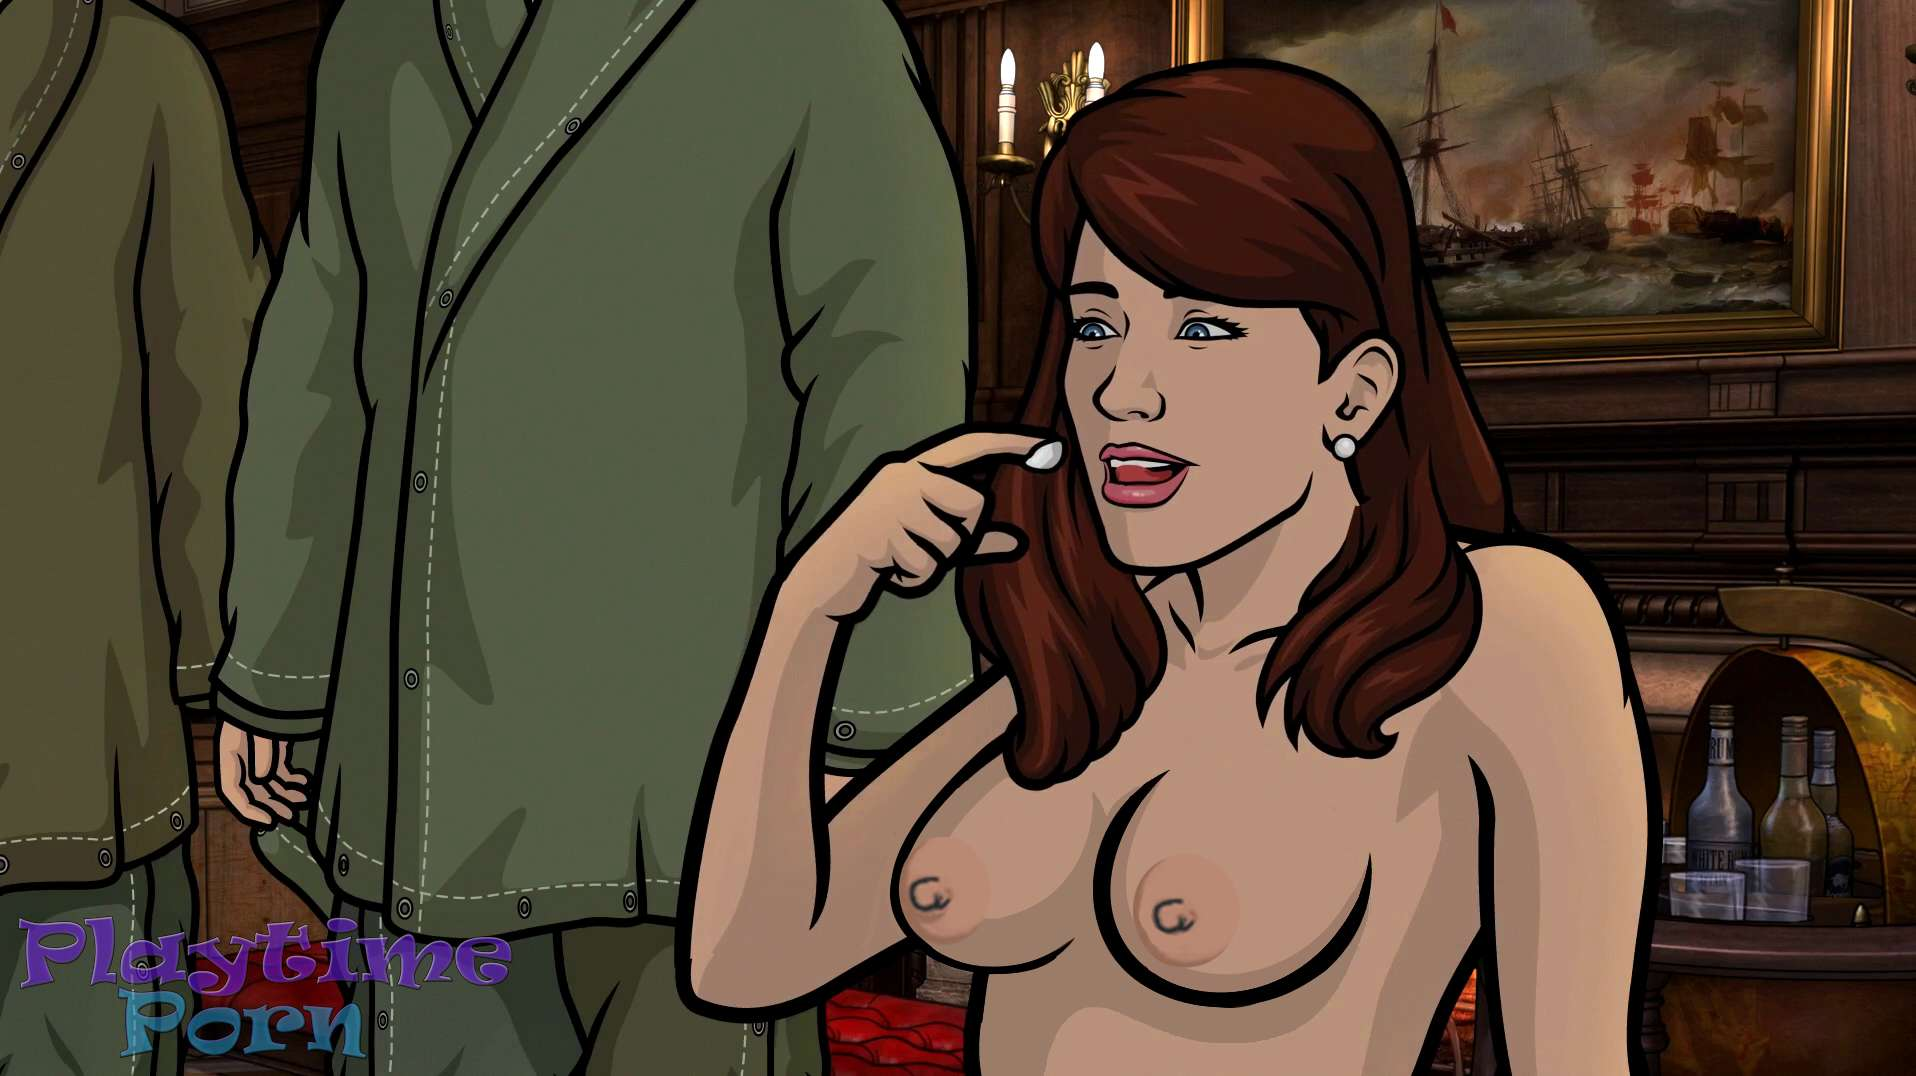 Cheryl tunt from archer porn naked movie